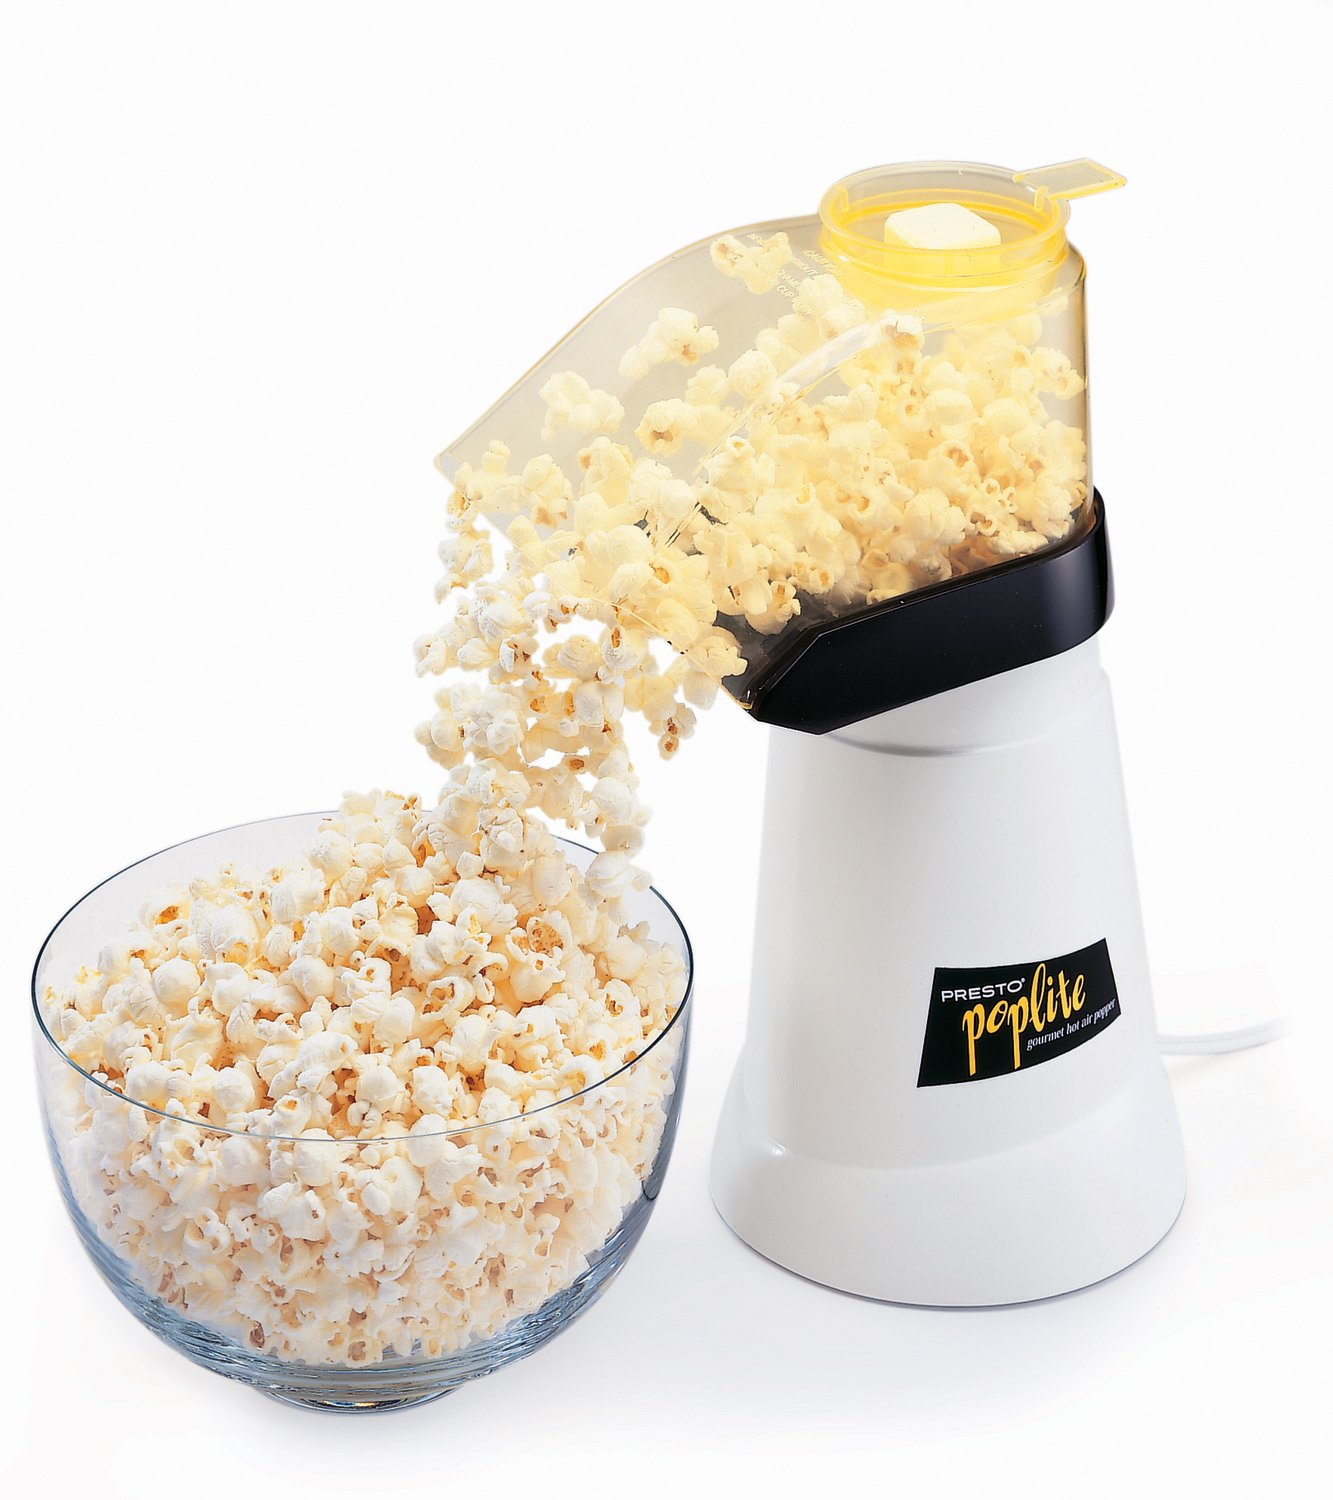 The Whirley Pop Popcorn Maker is a favorite for families and popcorn lovers alike Gourmet Toppings & More · Fresh Indiana Popcorn · Official Whirley-Pop HomeTypes: Popcorn Poppers, Popping Corn, Seasonings, Toppings, Gift Sets.